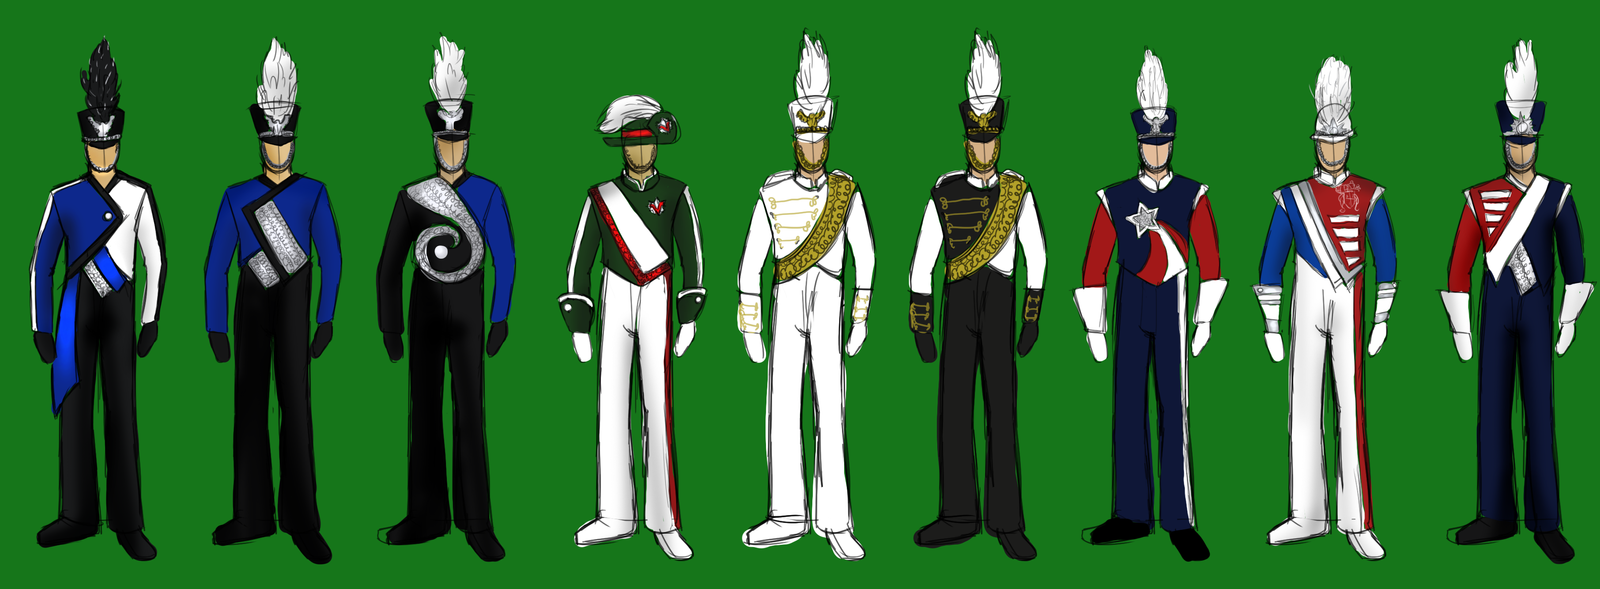 Some Marching Uniform Designs by 290Pika